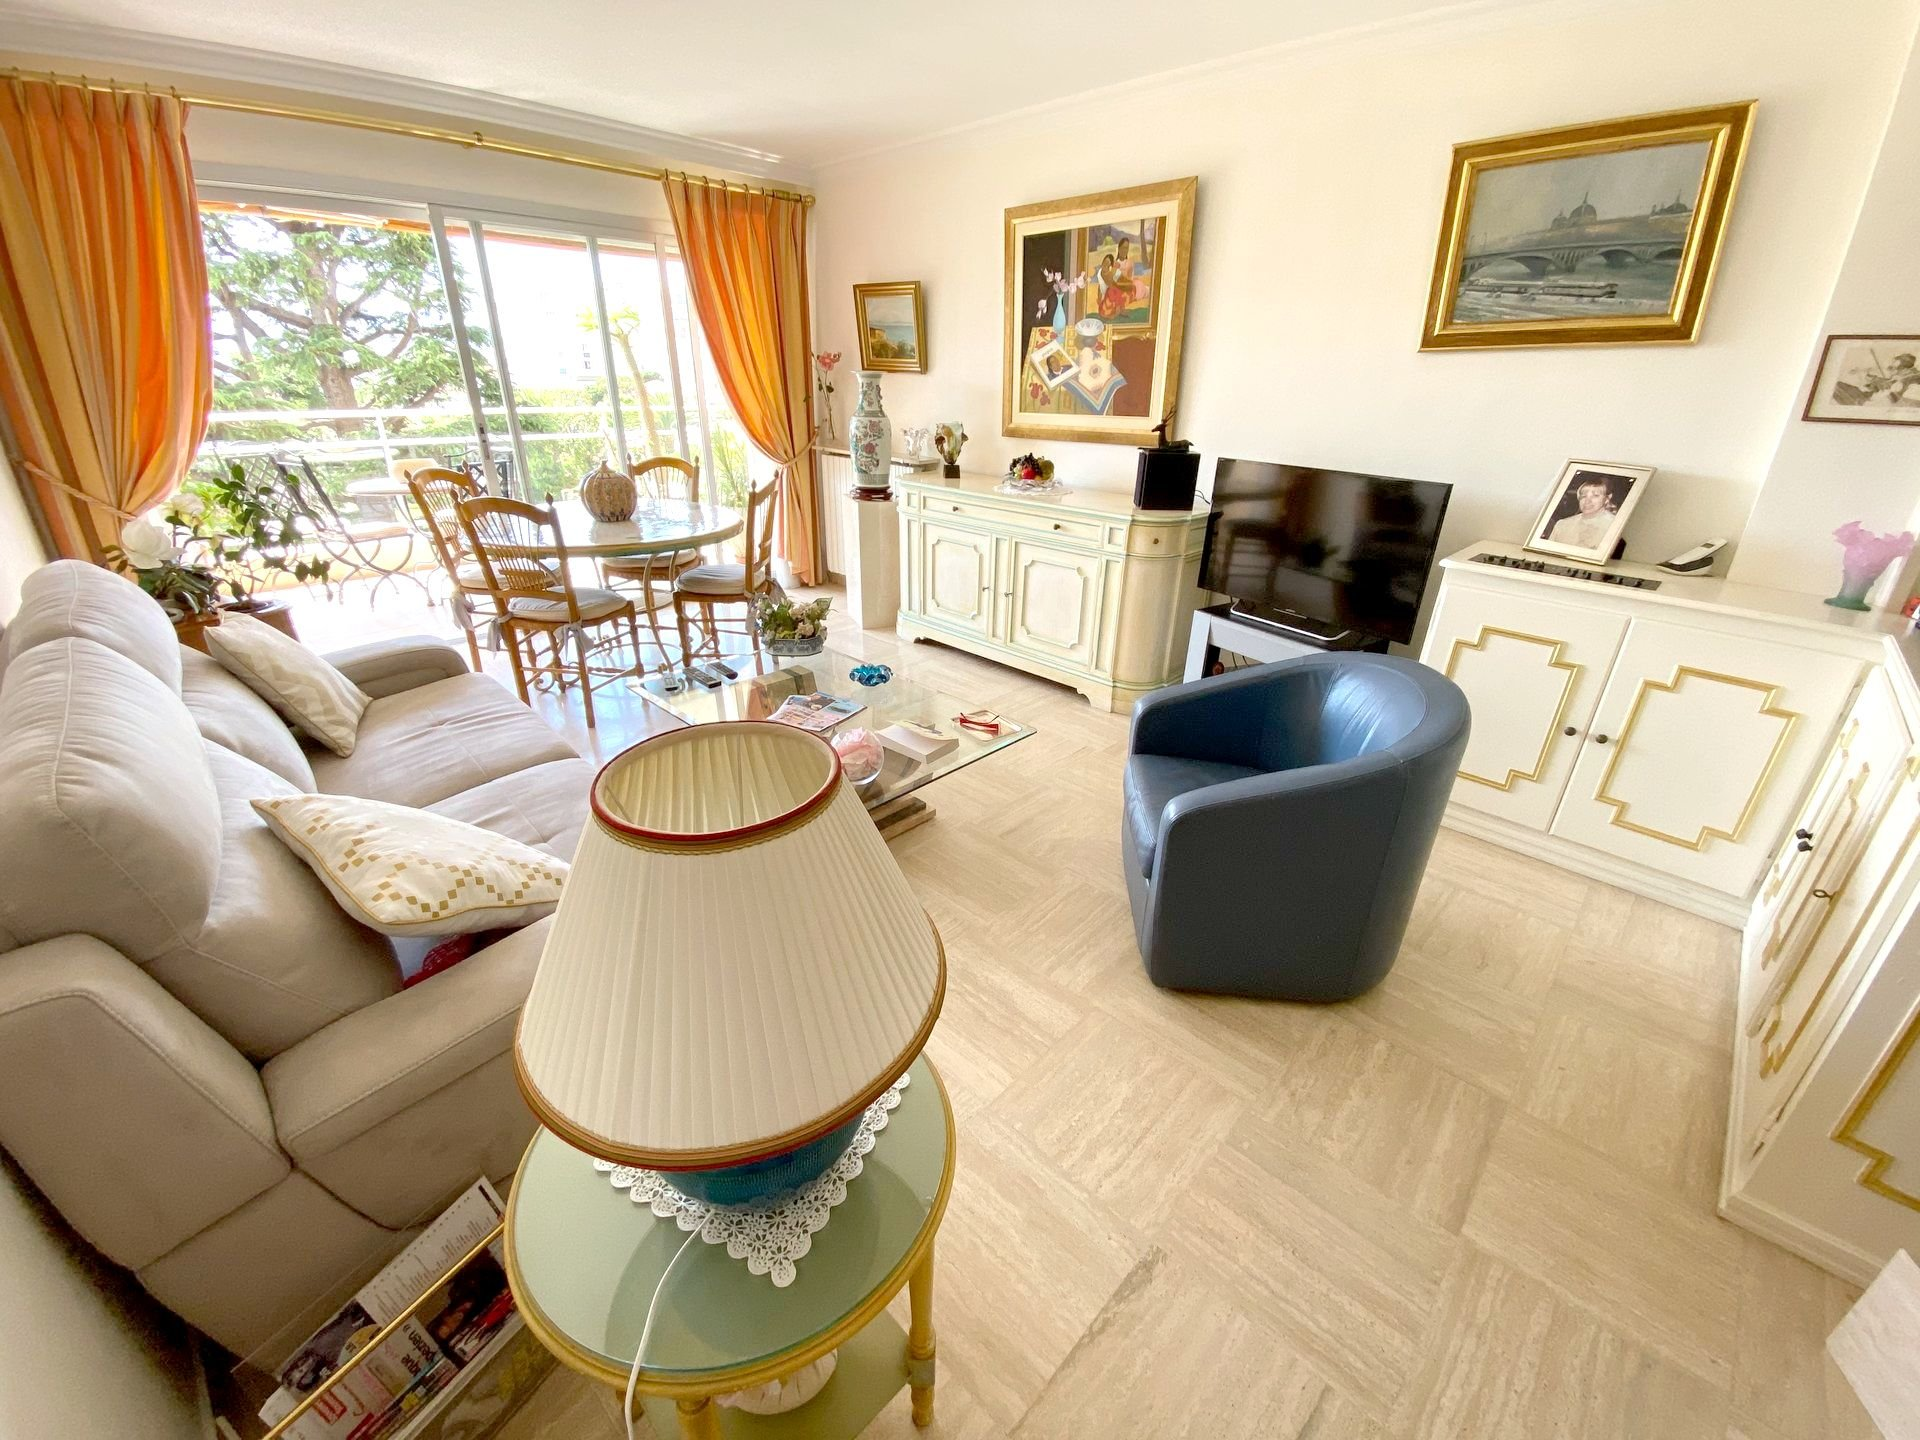 CANNES SALE LIFE APARTMENT NEAR BEACHES